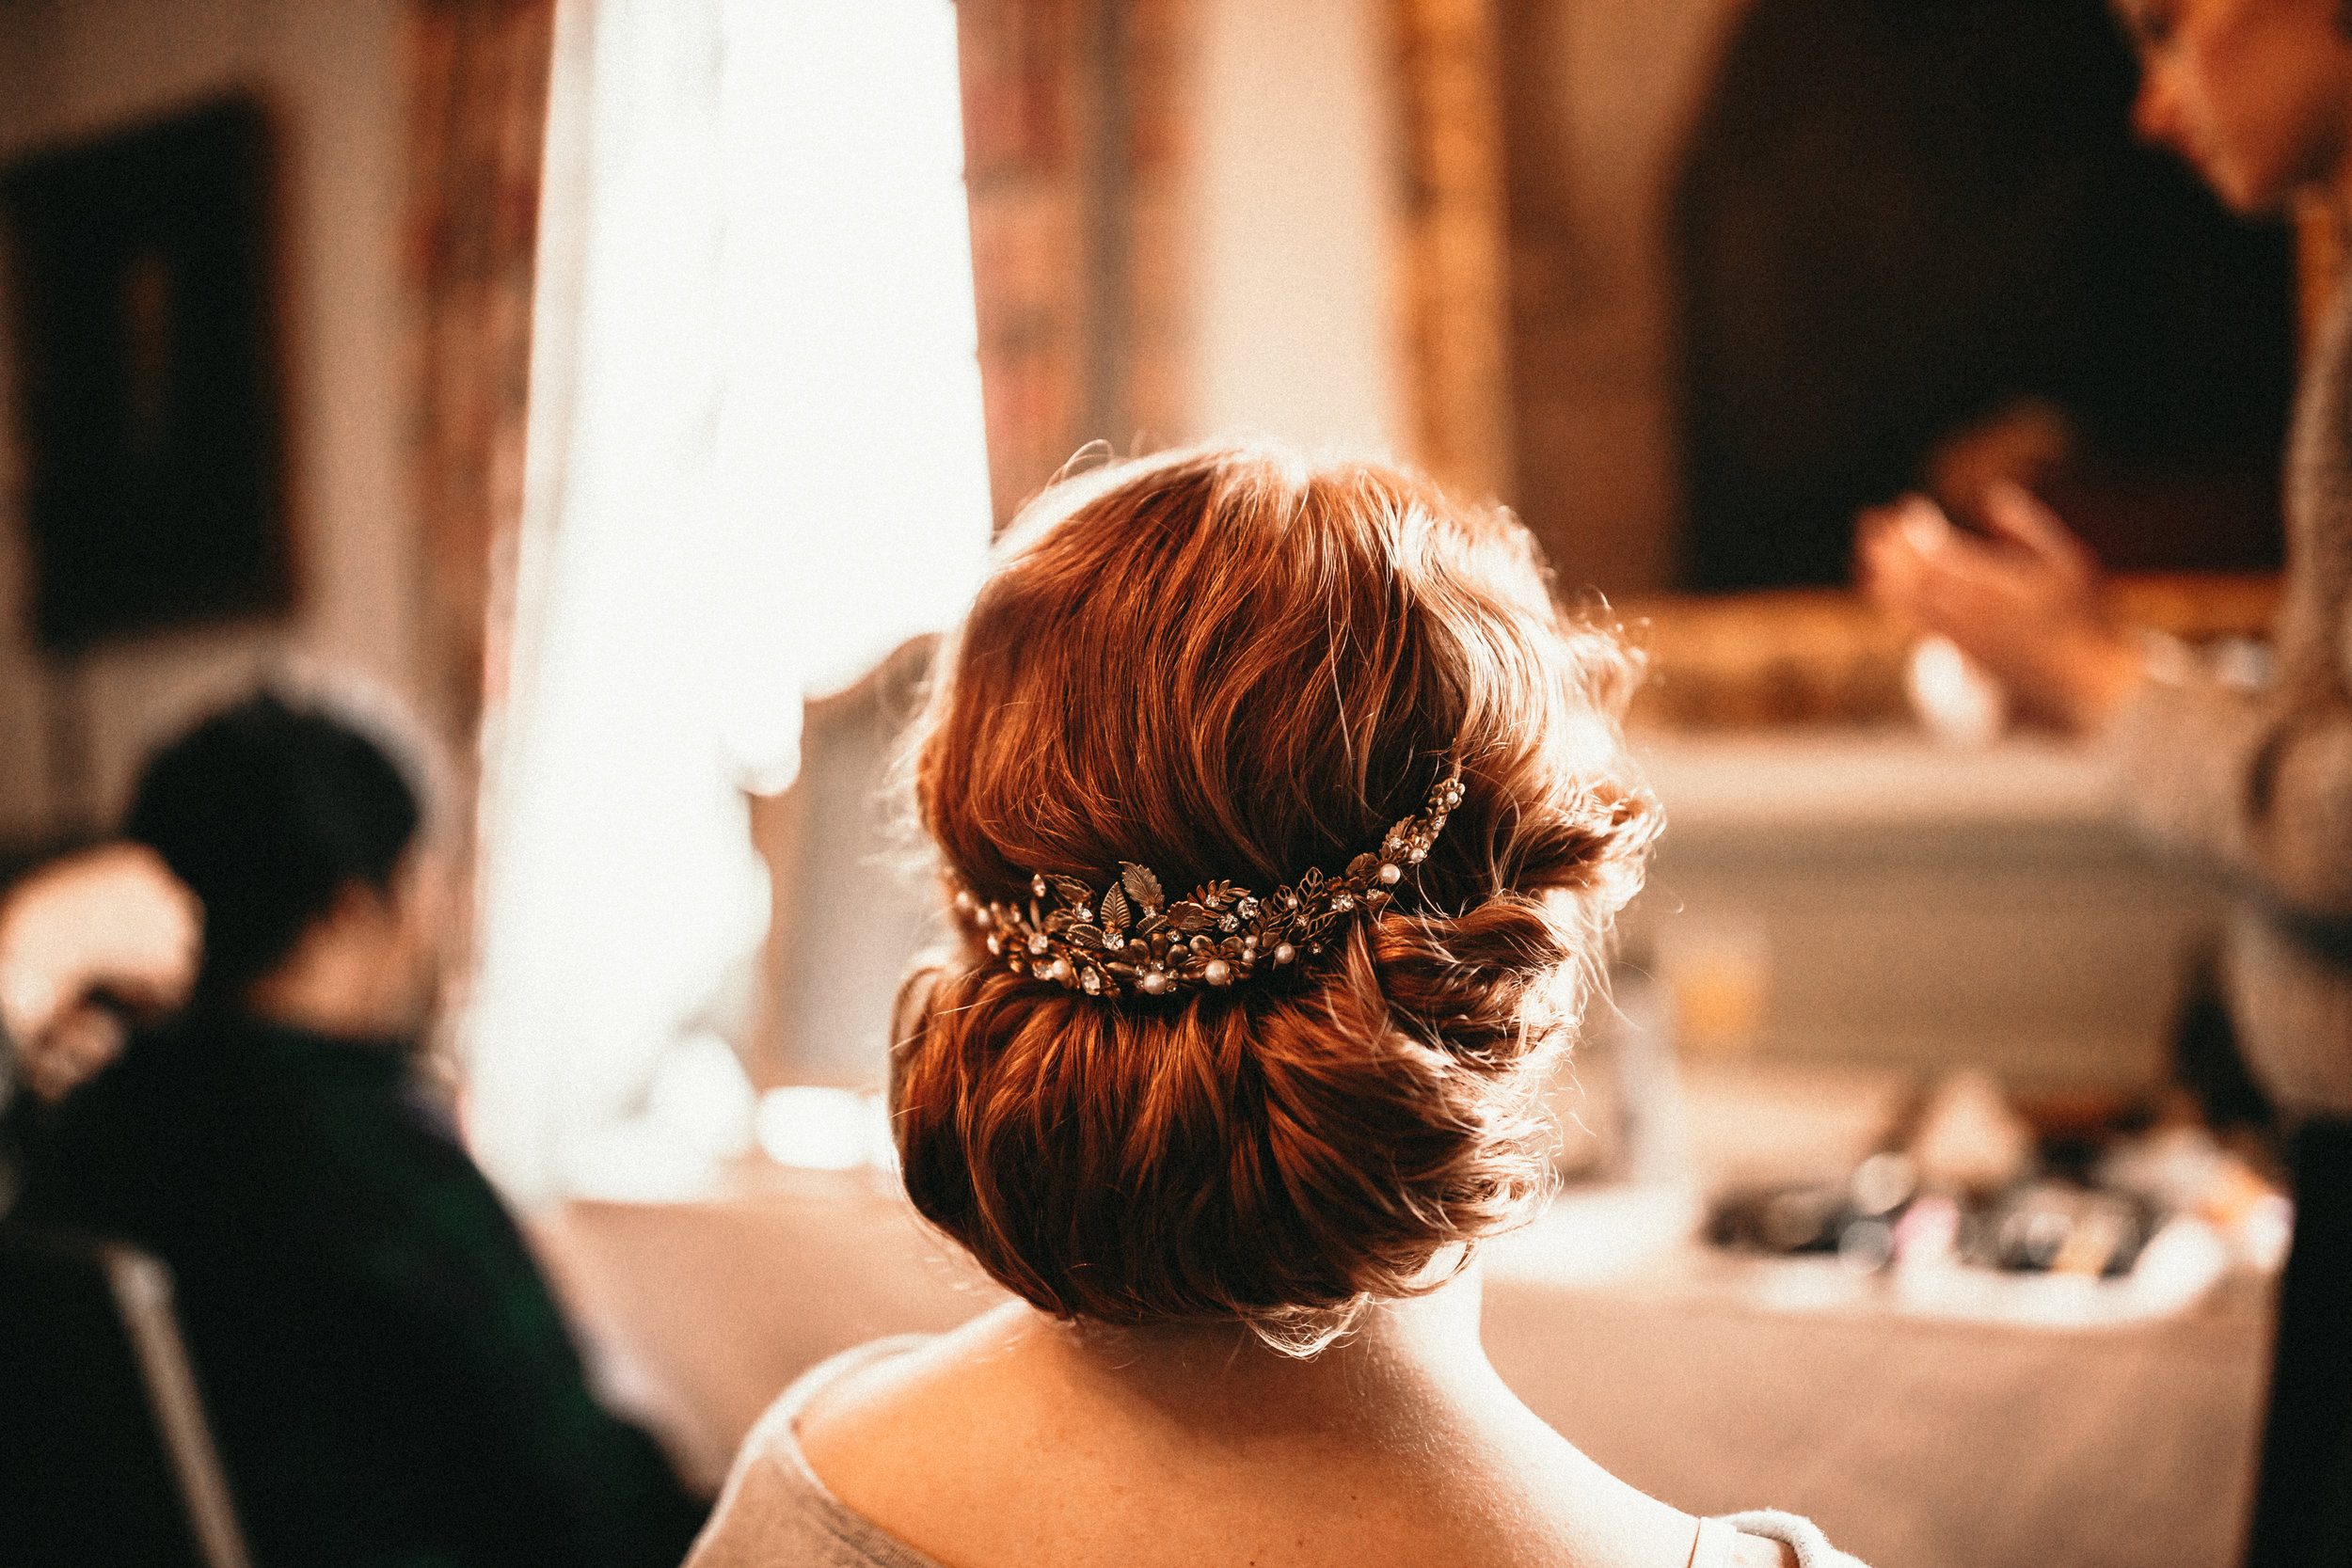 Jo-chilston-park-hotel-kent-wedding-bride-bridal-hairdresser-hairstylist-simply-beautiful-wedding-hair